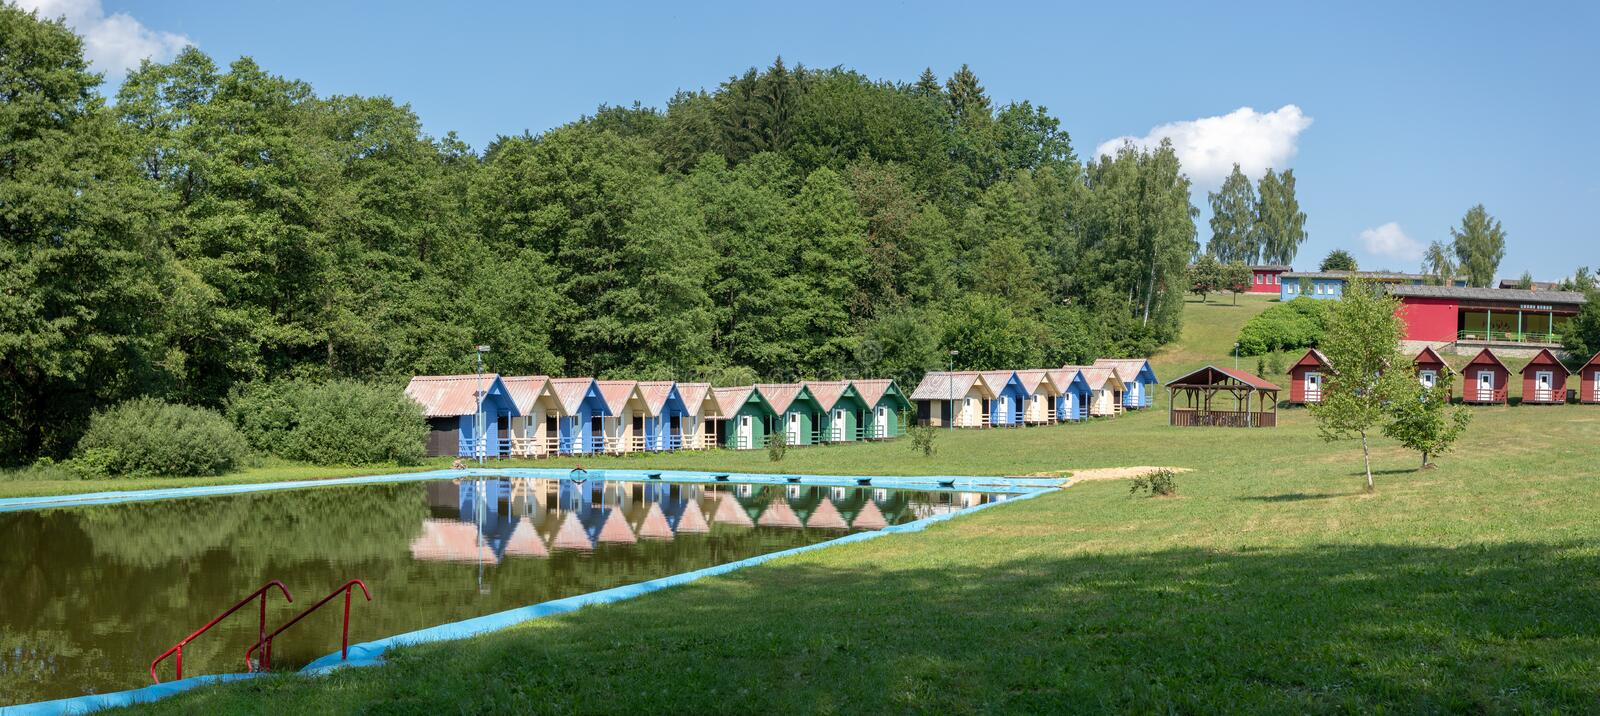 Children`s chalets camp in summer. Beautiful blue chalets in a summer camp for children situated near pond stock photos